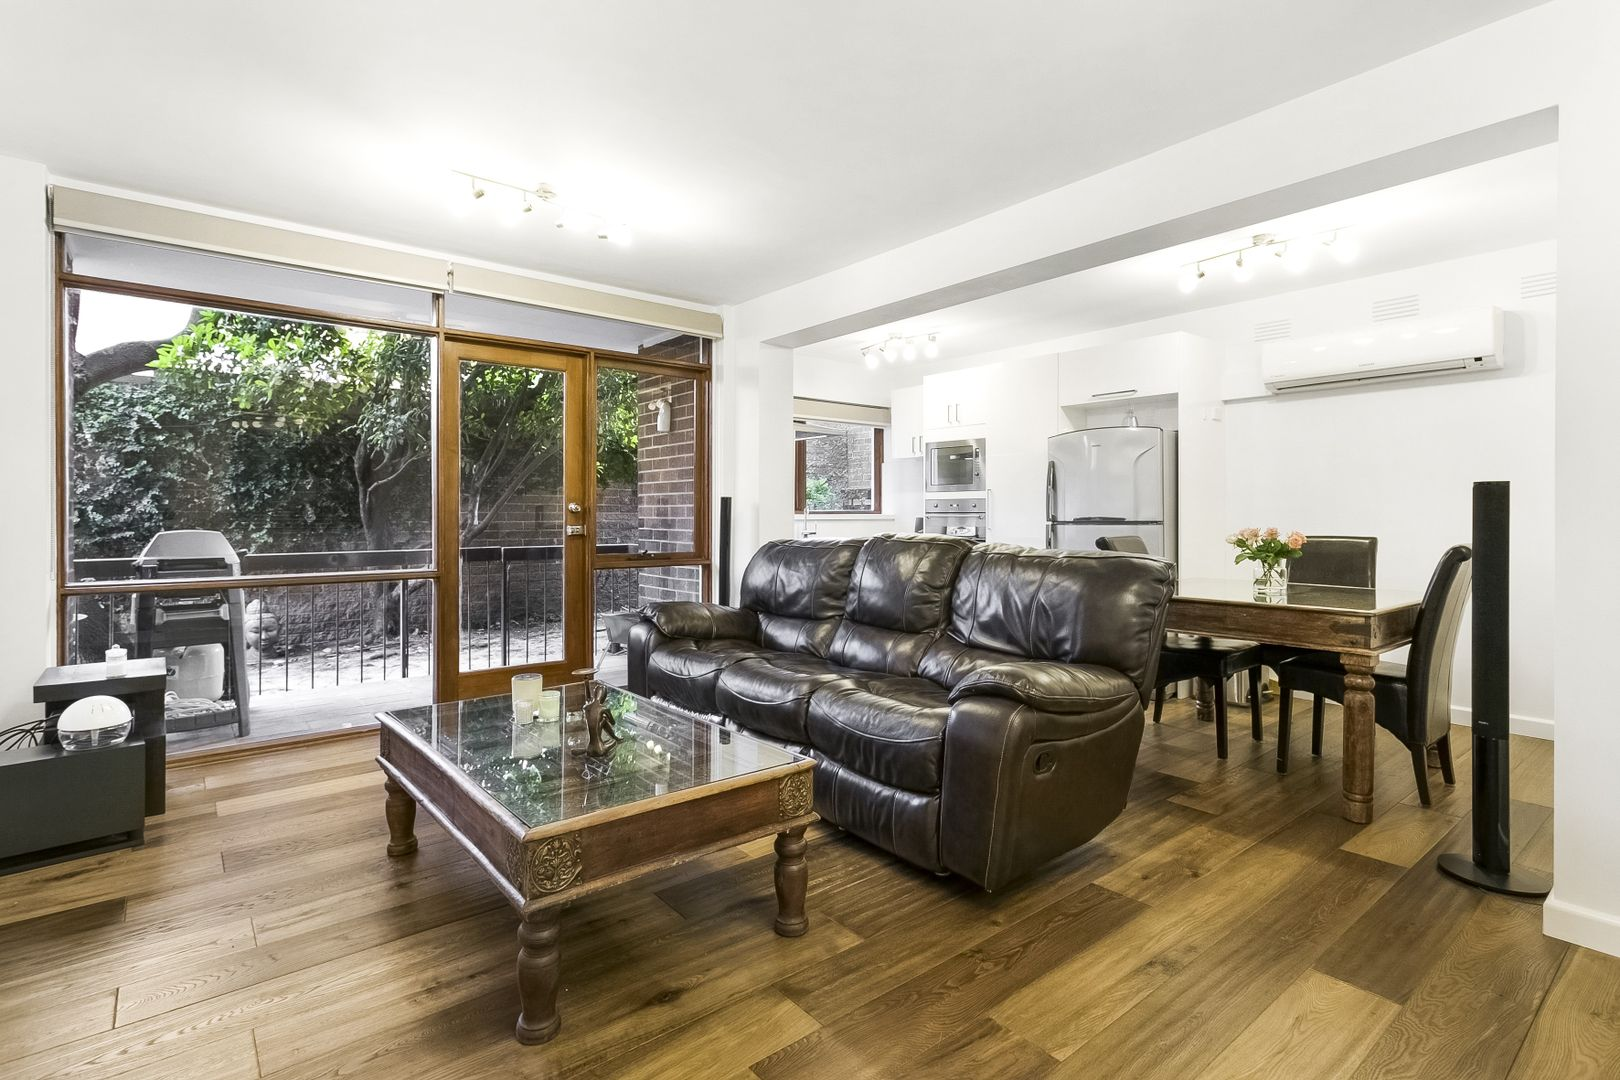 66/50 King William Street, Fitzroy VIC 3065, Image 0